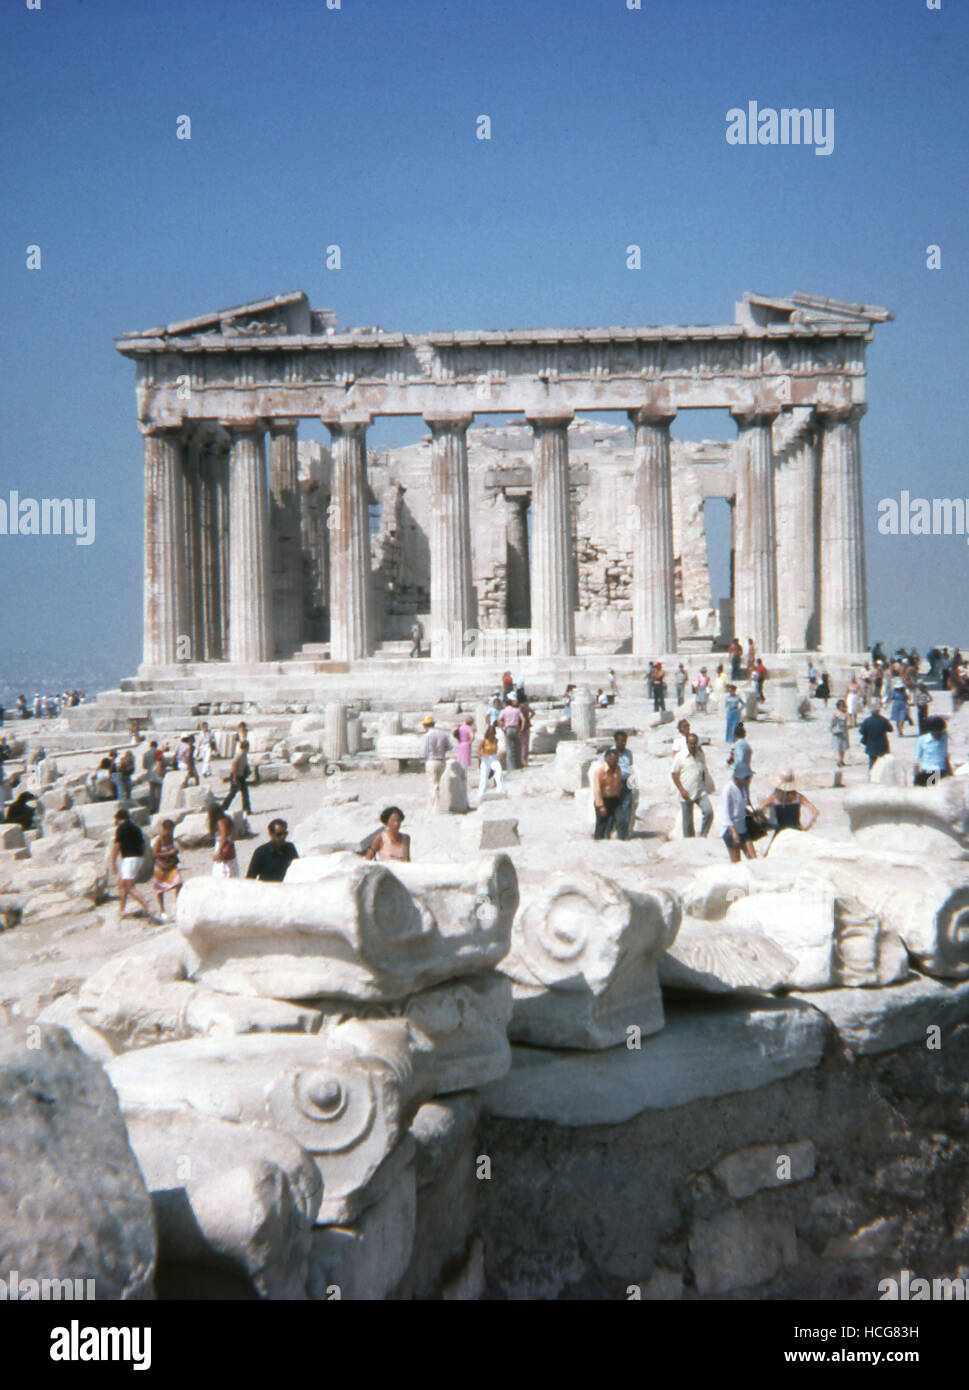 This photo, taken around 1990, shows a front view of the Acropolis in Athens, Greece. The Acropolis in Athens, Greece, - Stock Image